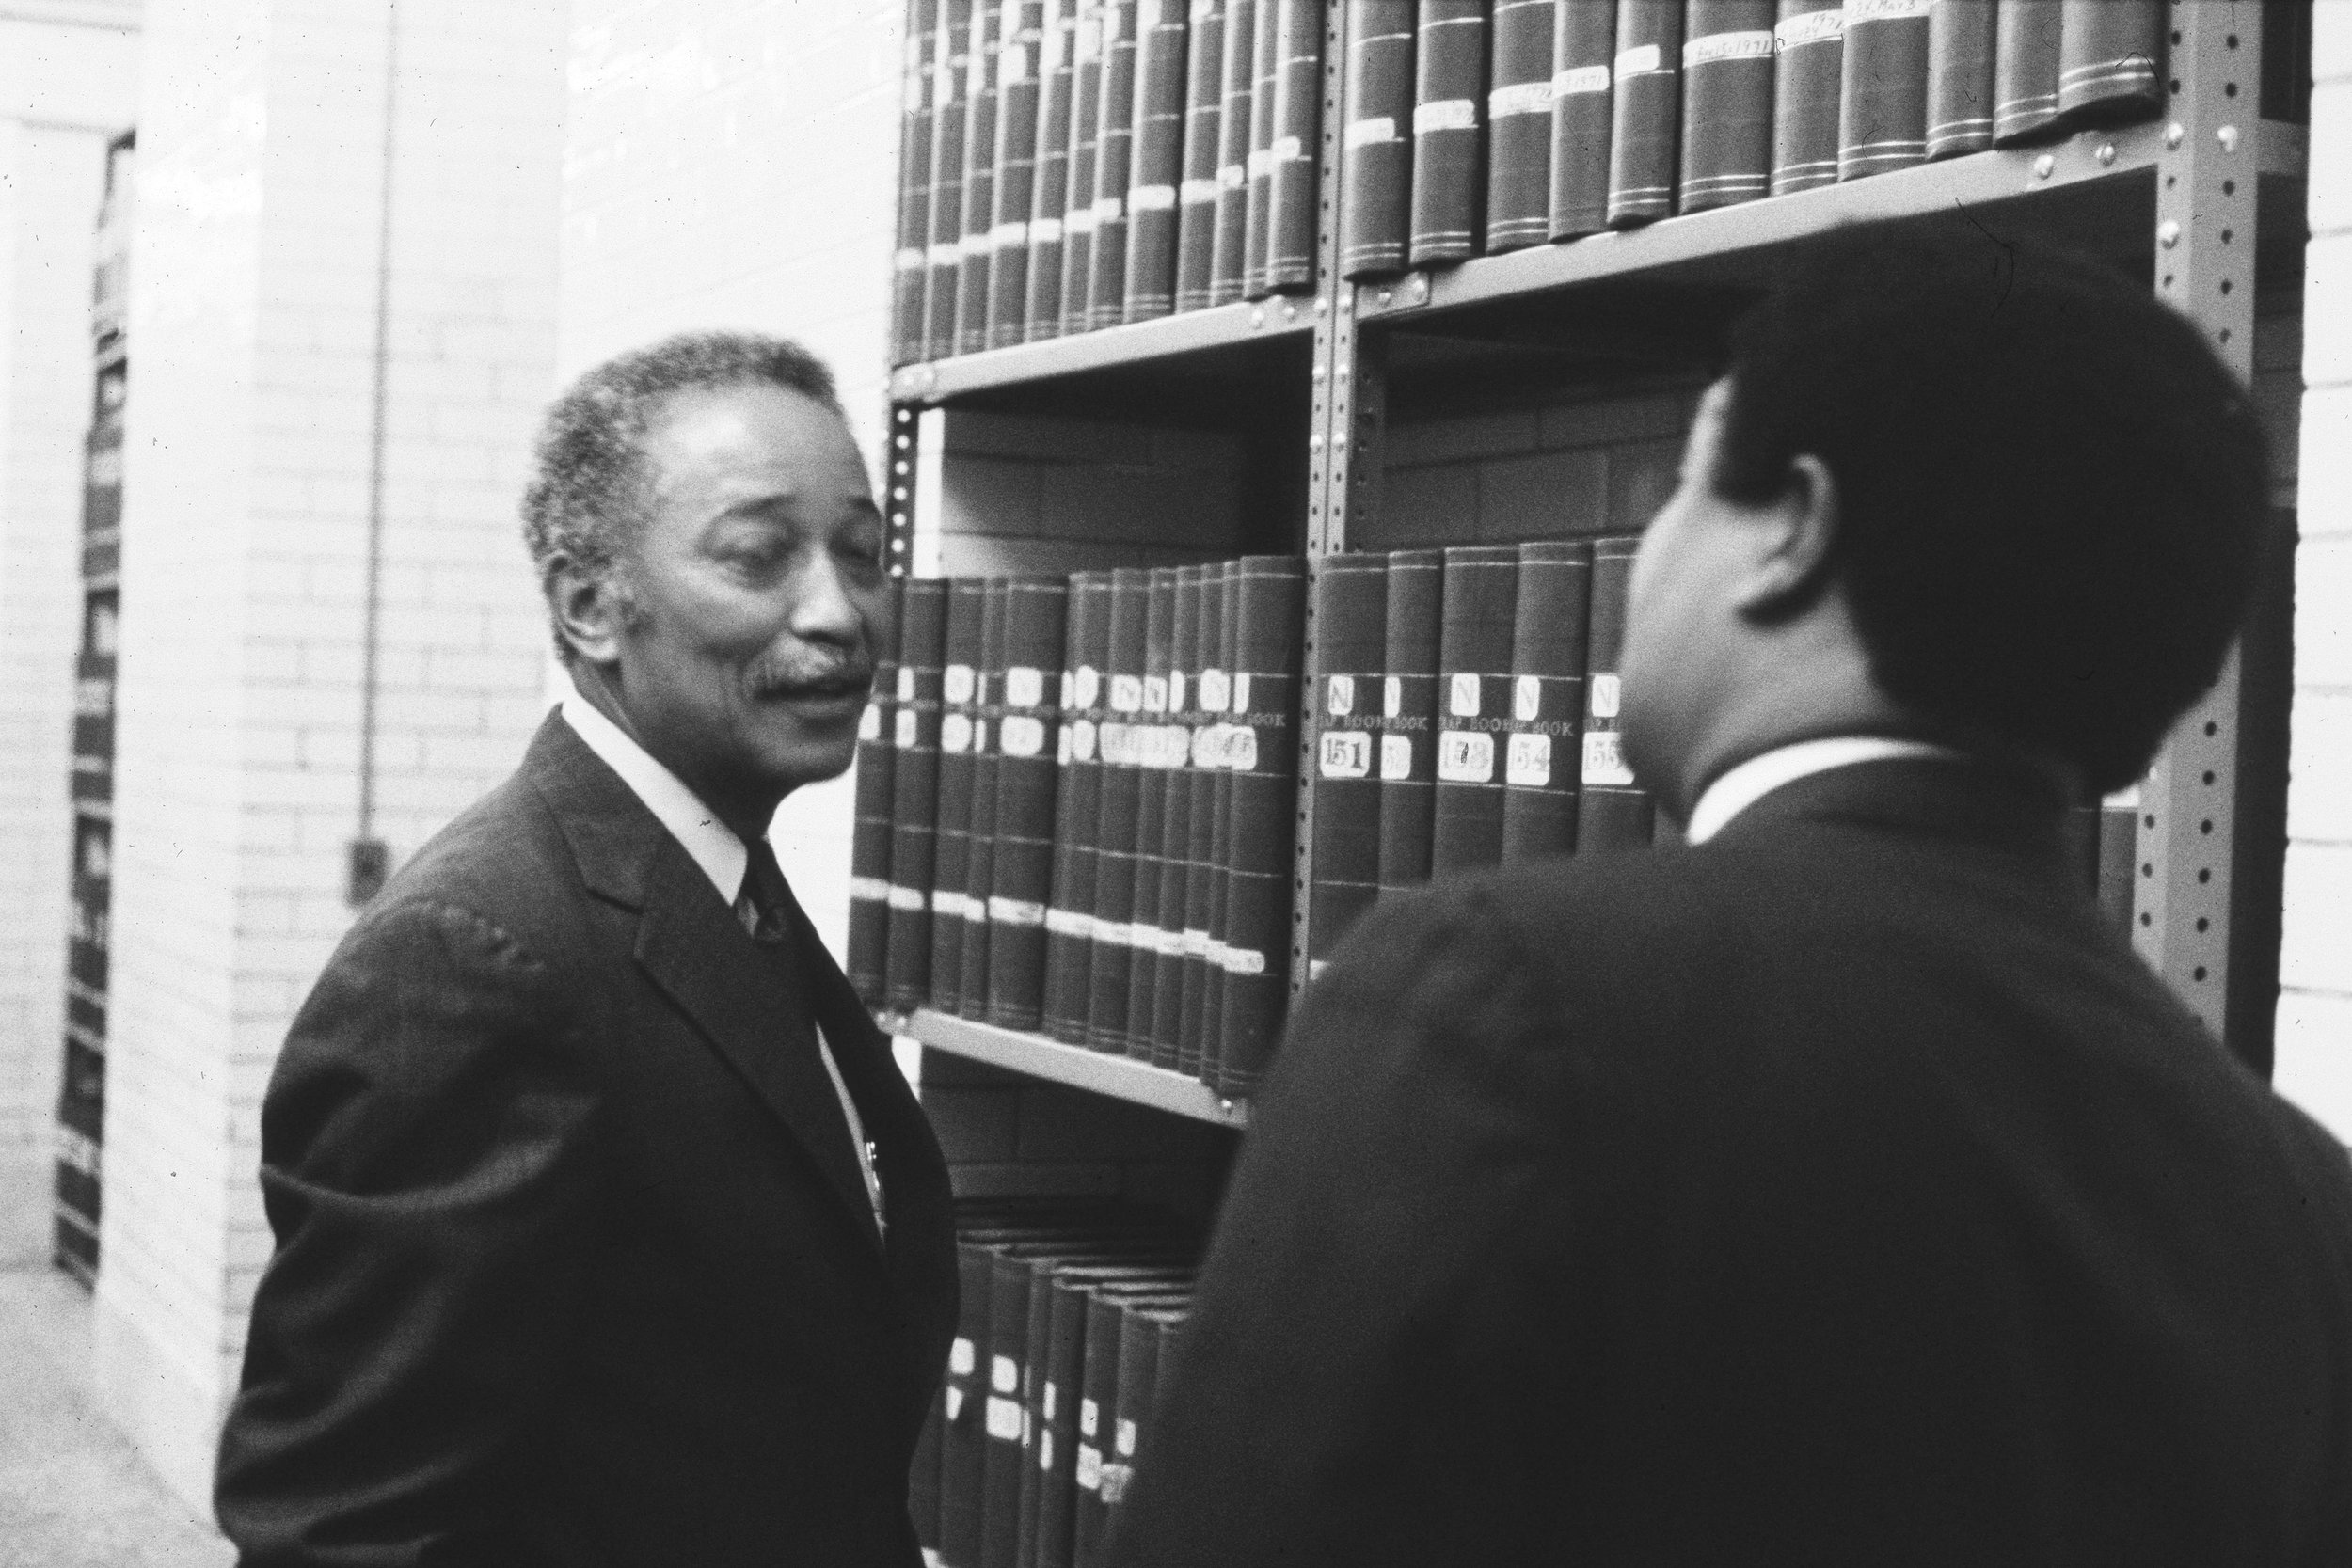 David N. Dinkins with Idilio Gracia Peña in a Municipal Archives storeroom, 1984. At this time Dinkins was City Clerk.